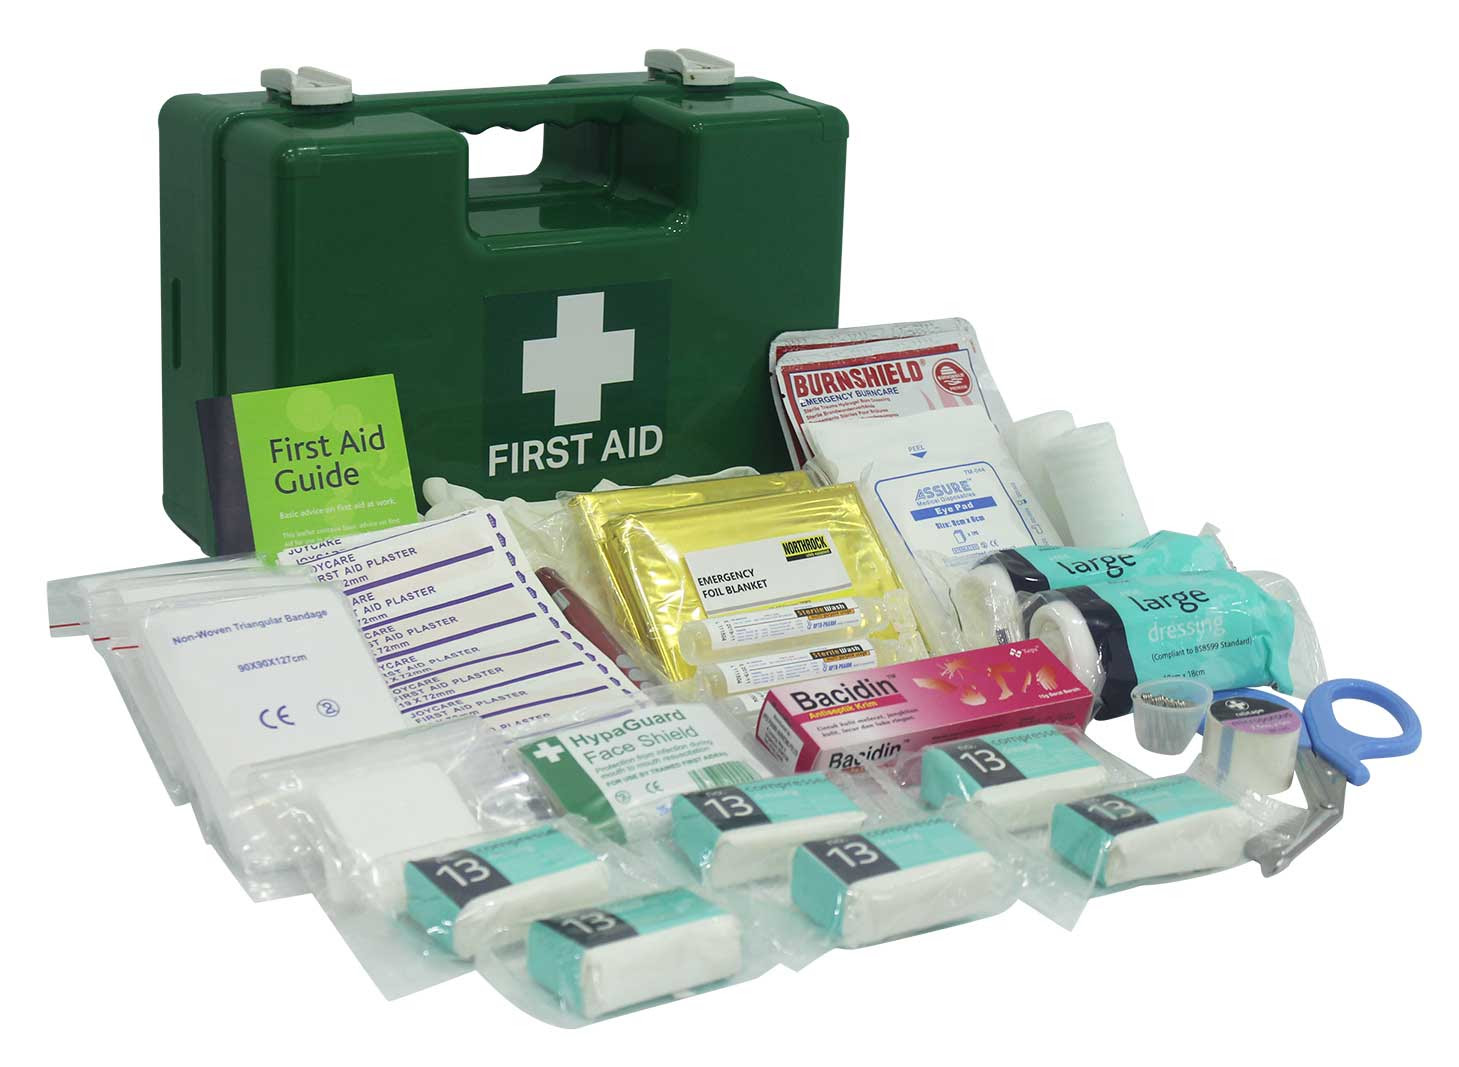 First Aid Supplies - The Y Guide